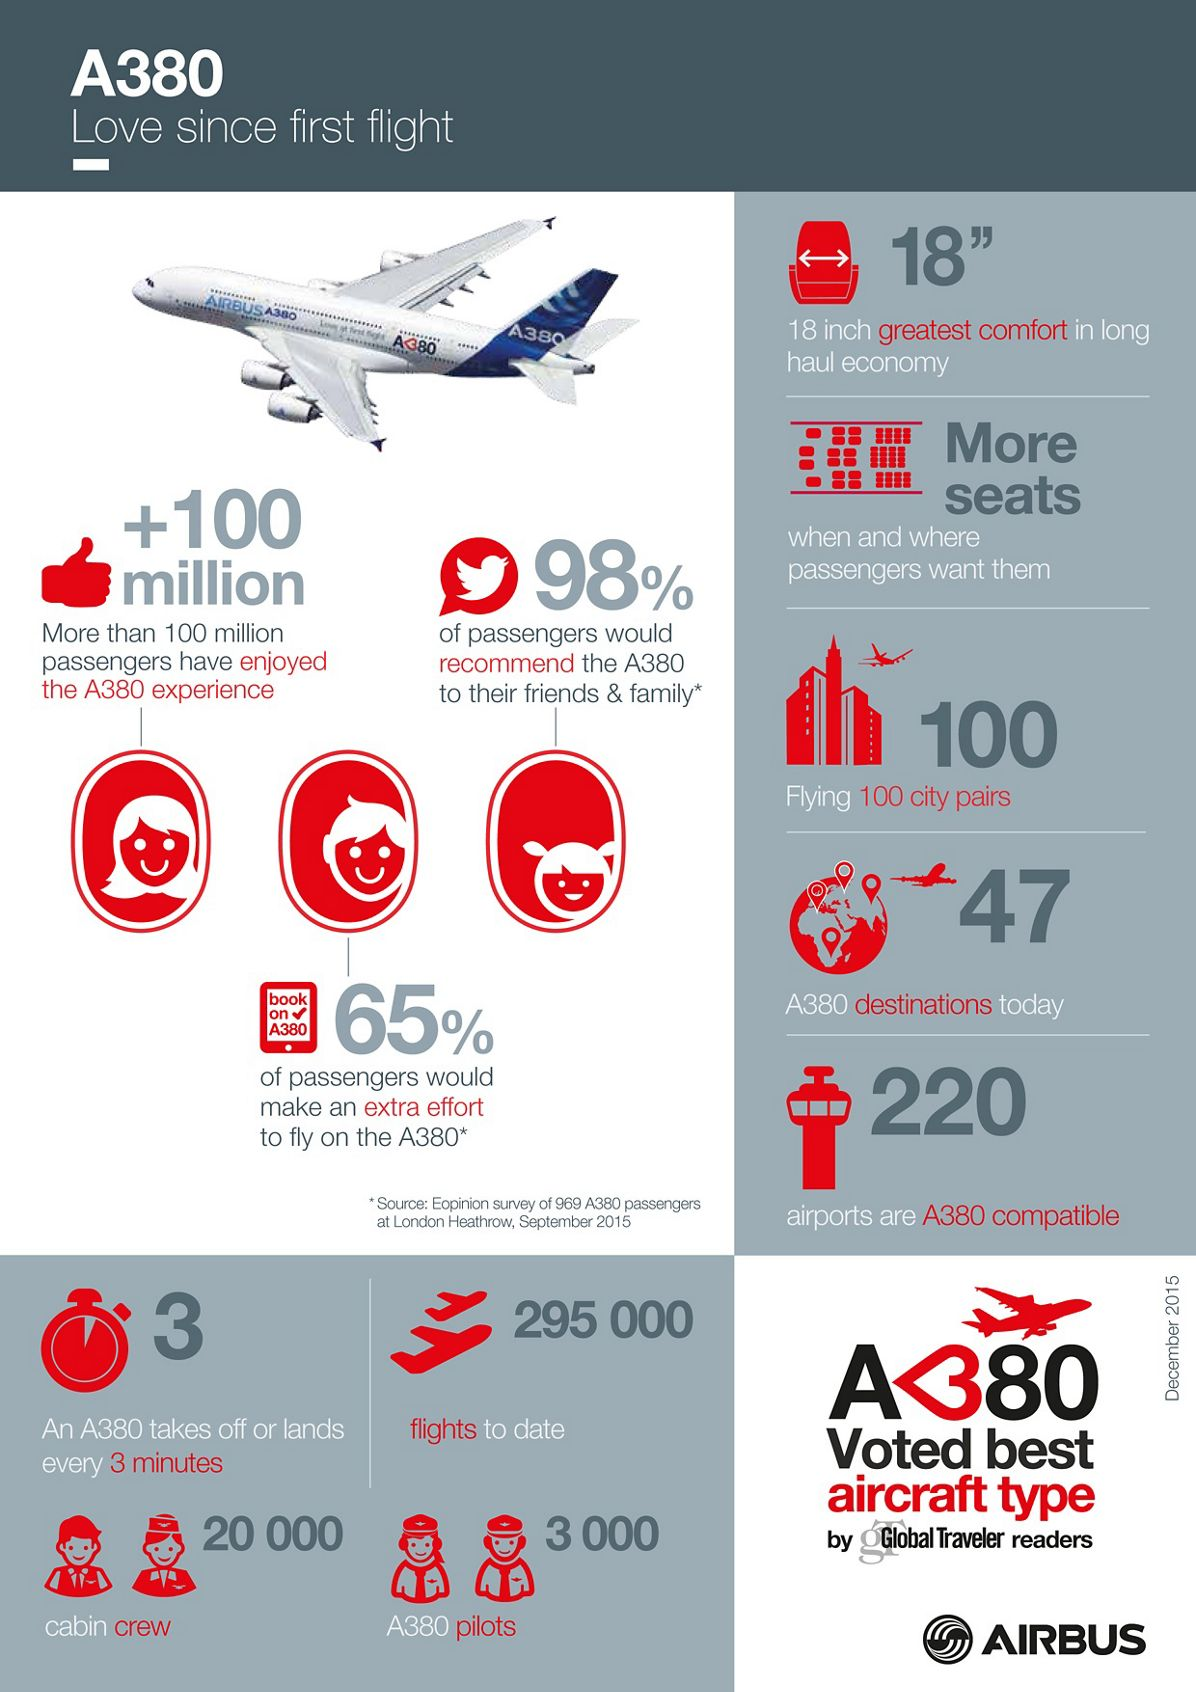 A380_Infographics_LAX_recto, A380_Infographic_Love since first flight